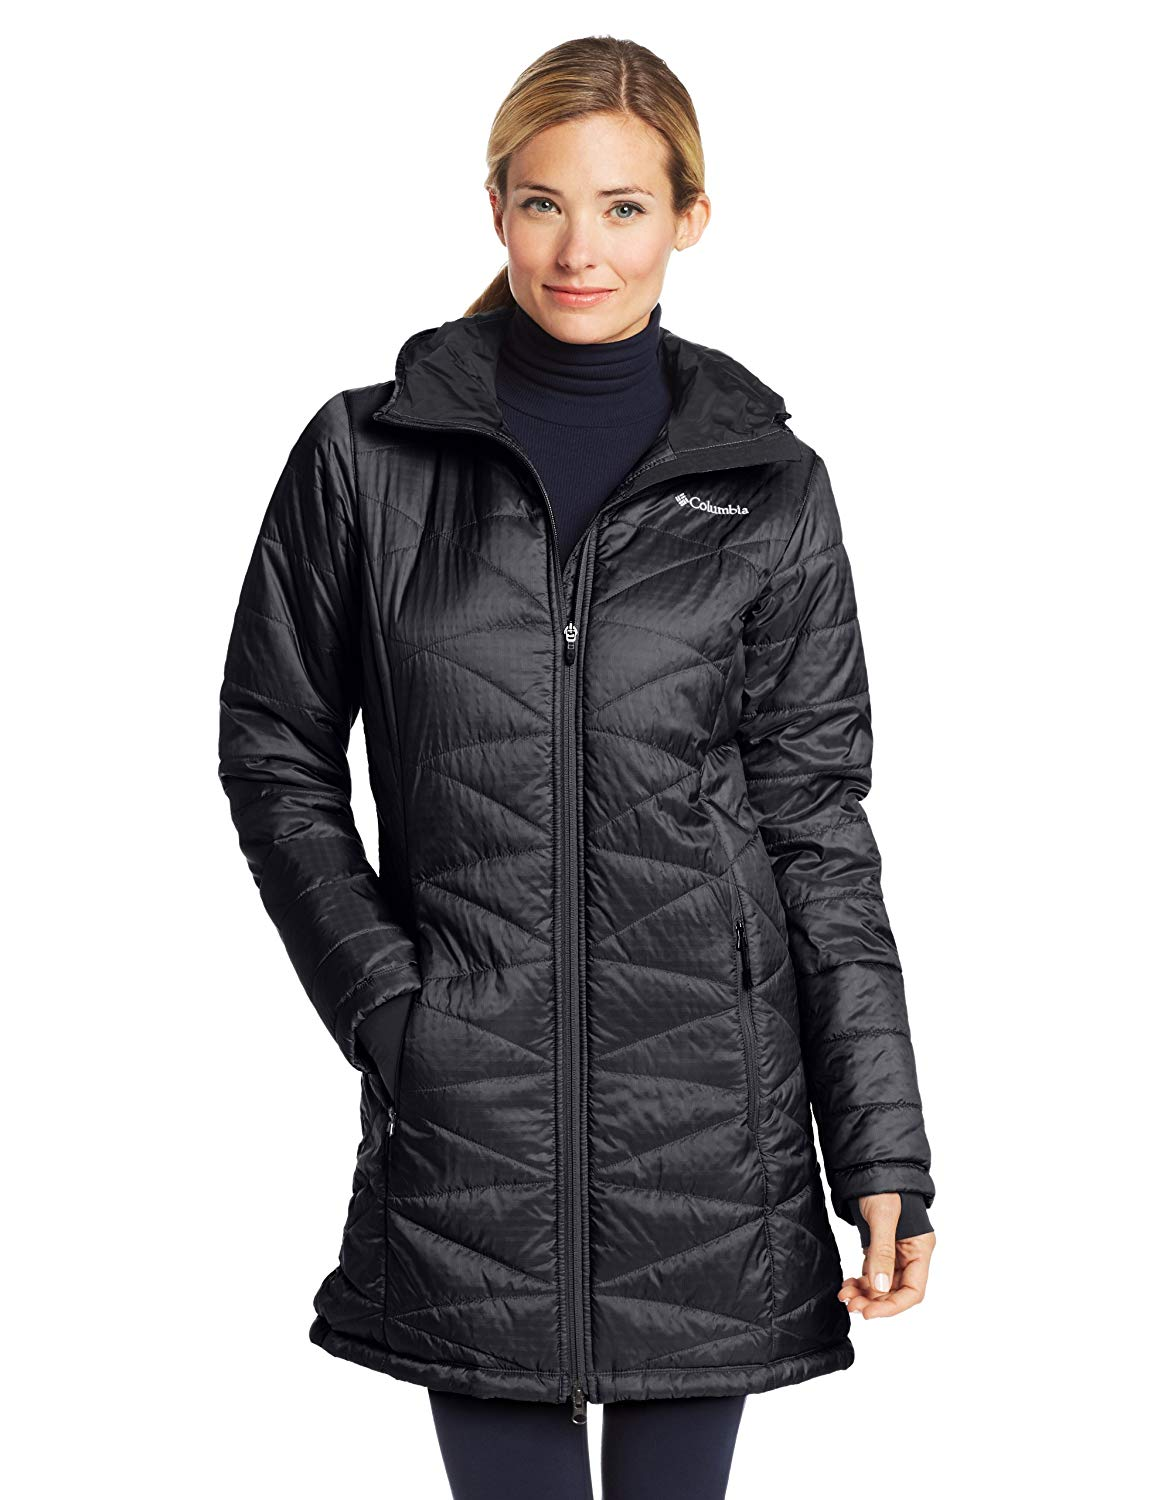 Women's Jackets mighty lite hooded jacket LQAOEZH